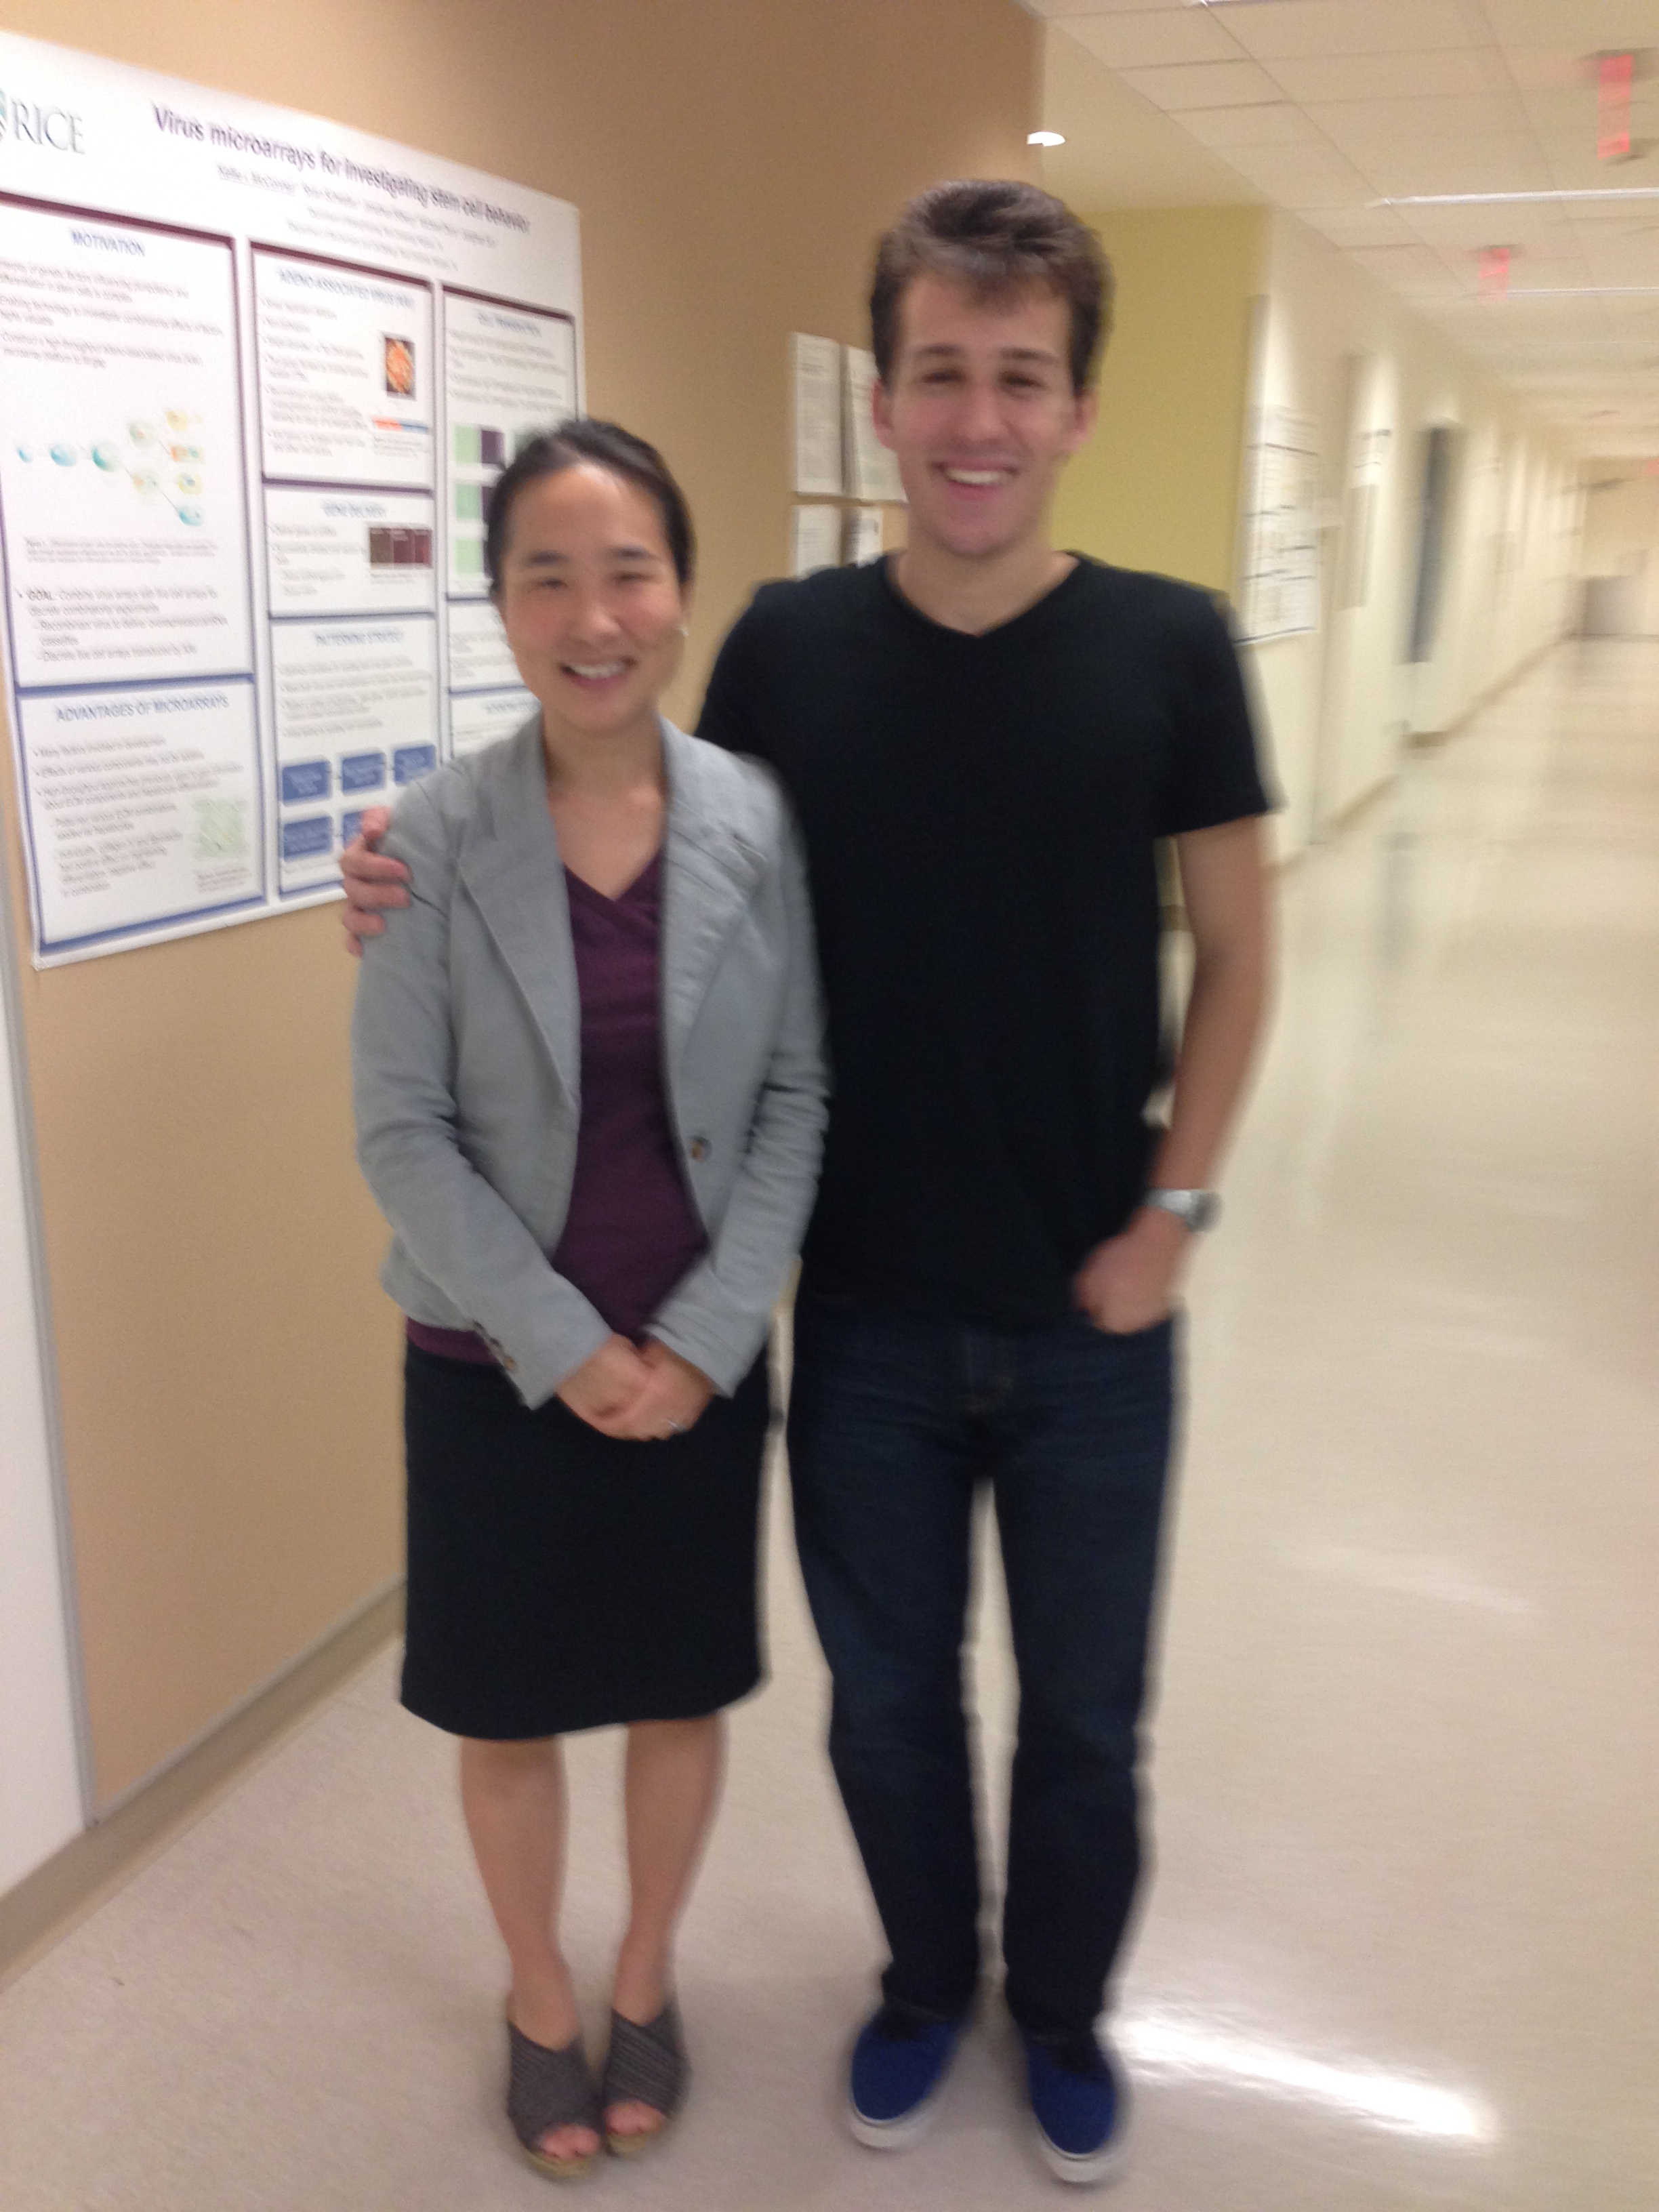 Dr Suh and Nico Medellin